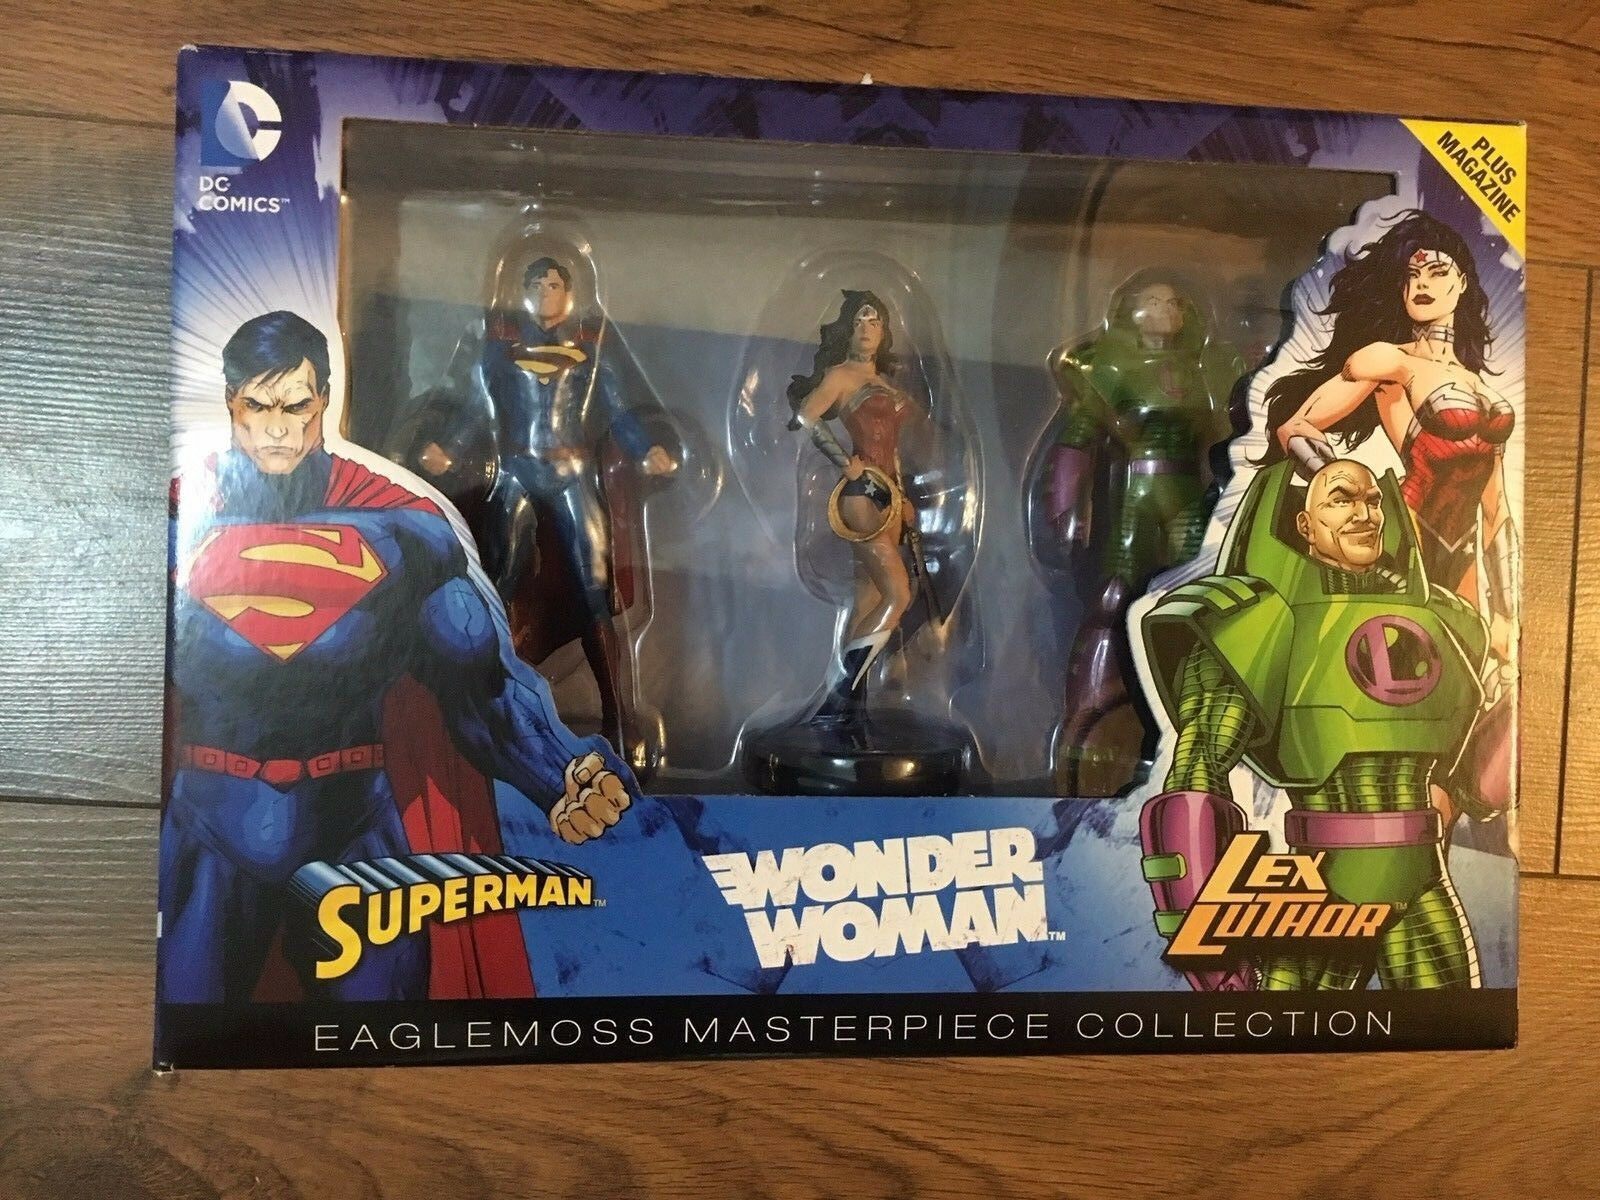 DC FIGURINE BOX SET- Superman- Wonder Woman - Lex Luthor